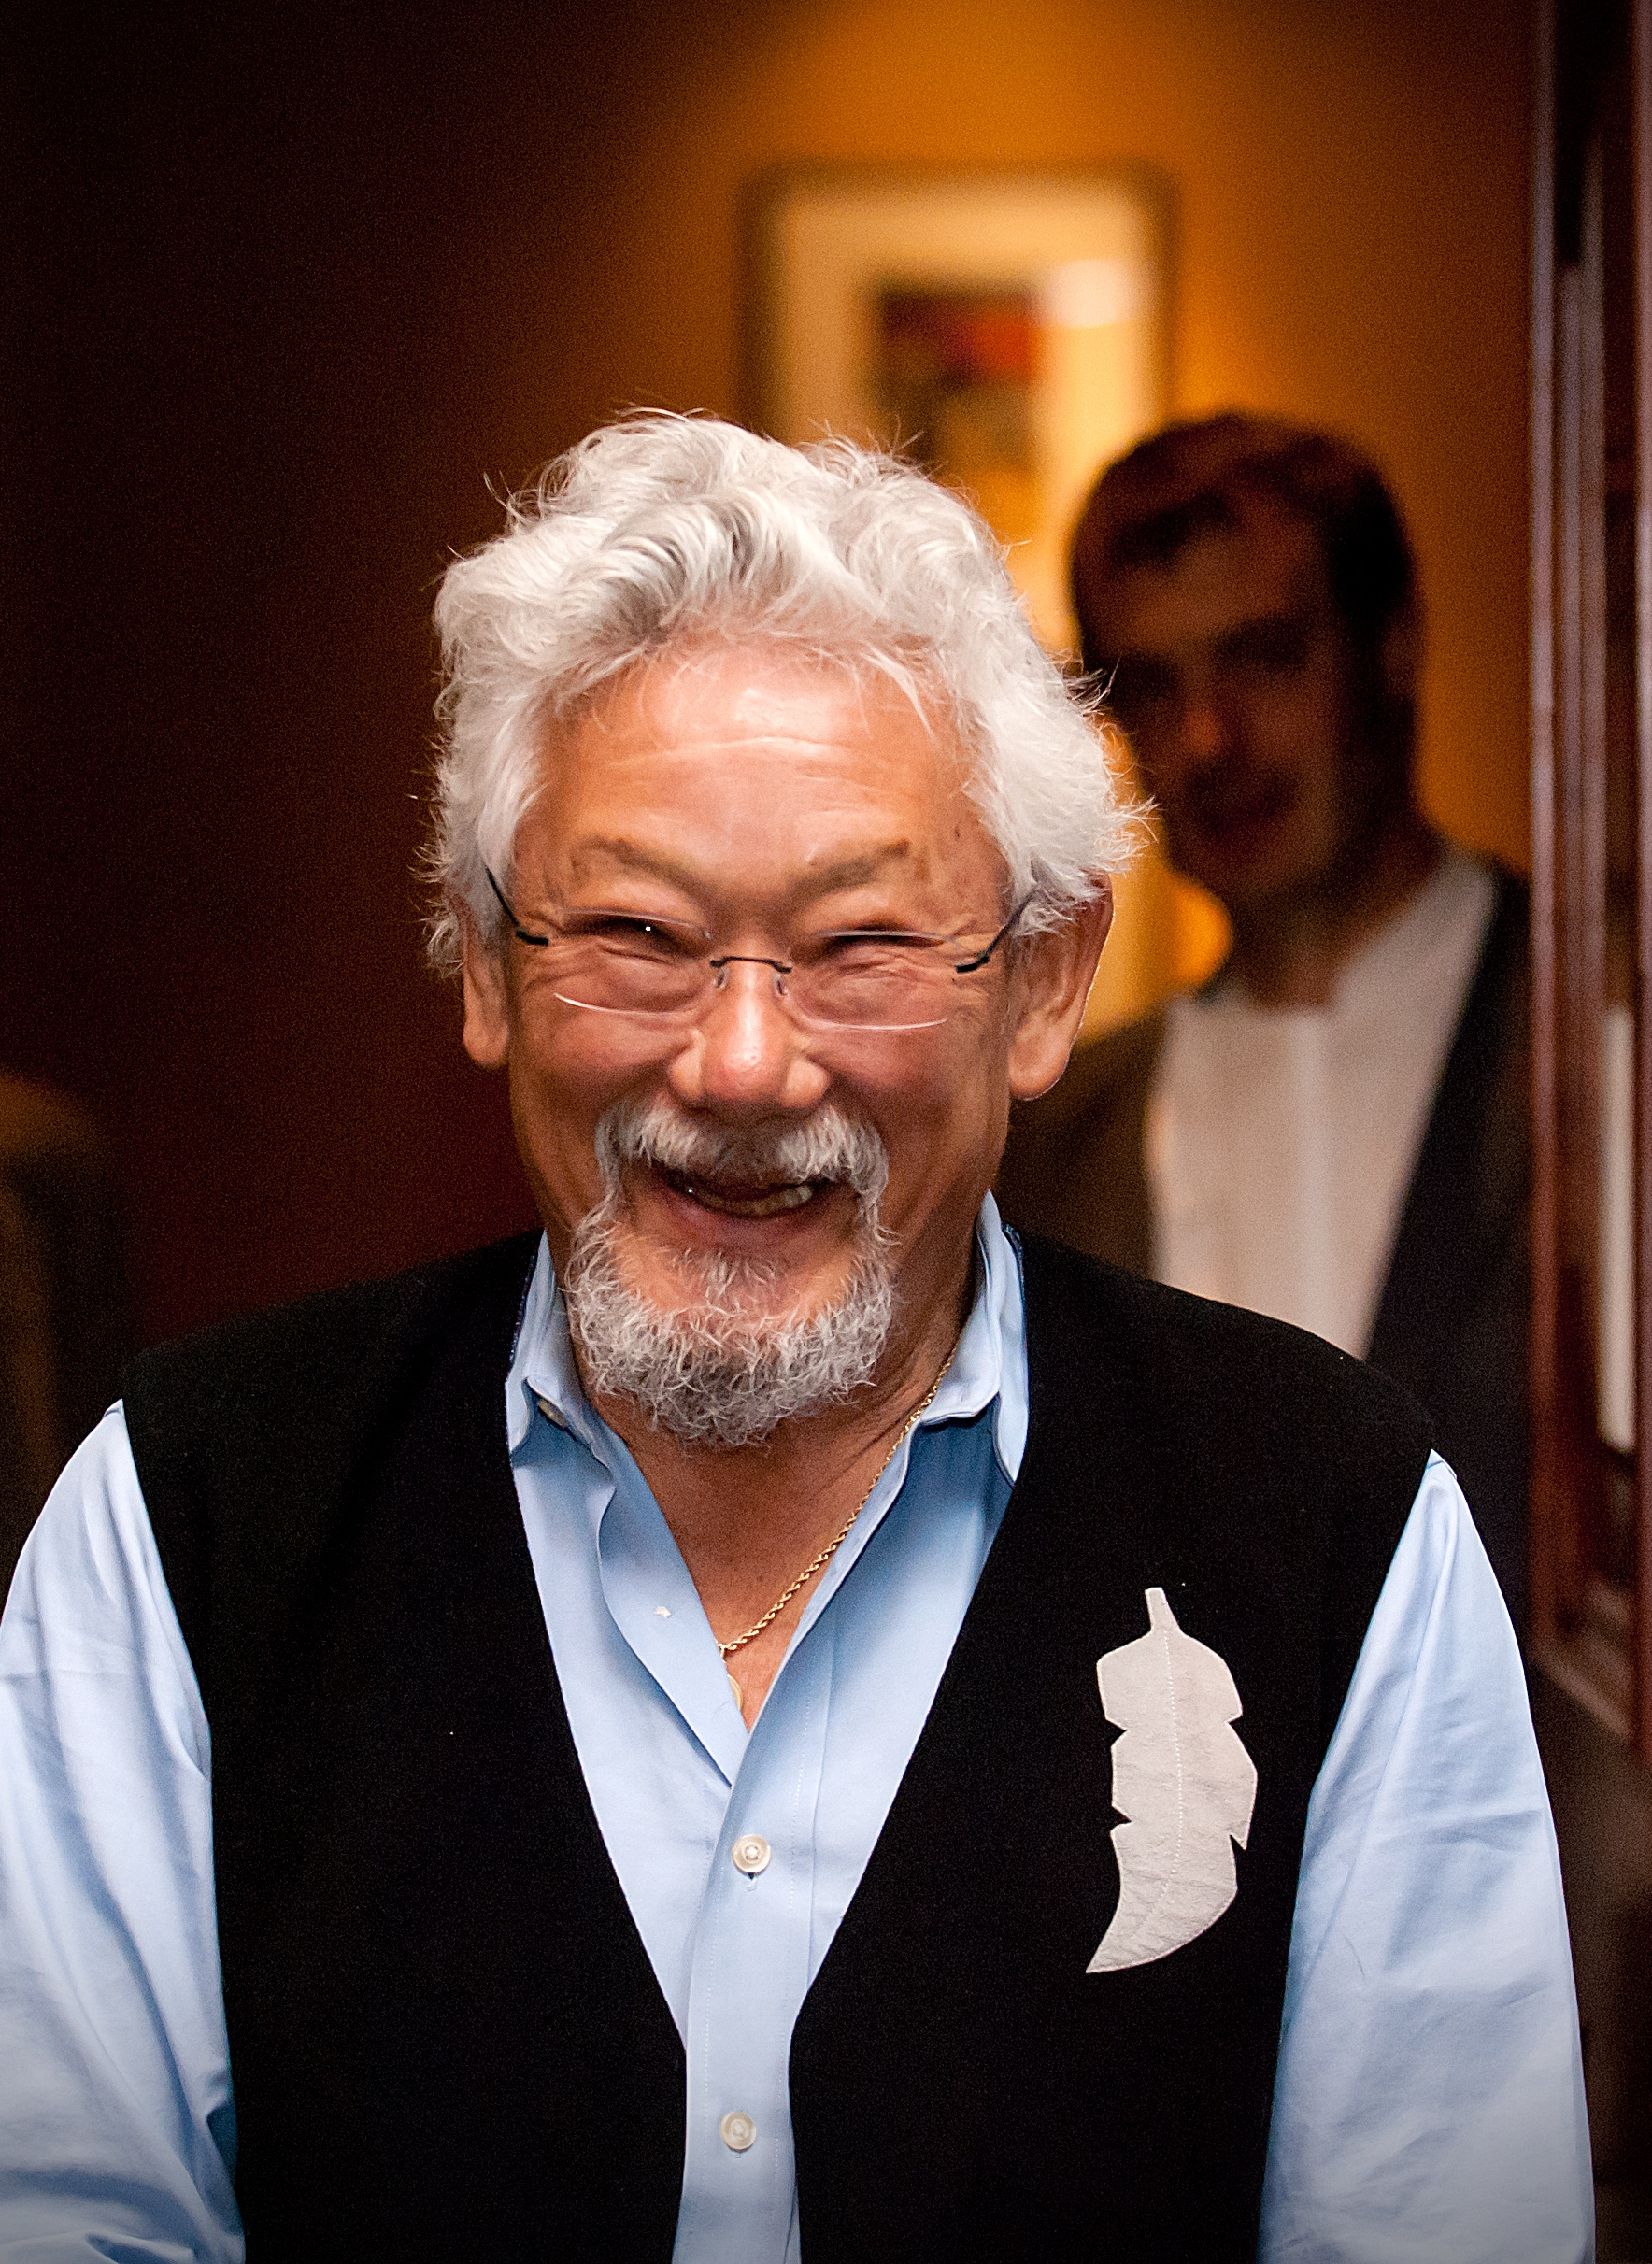 David Suzuki Credit: Barry J Brady Photography